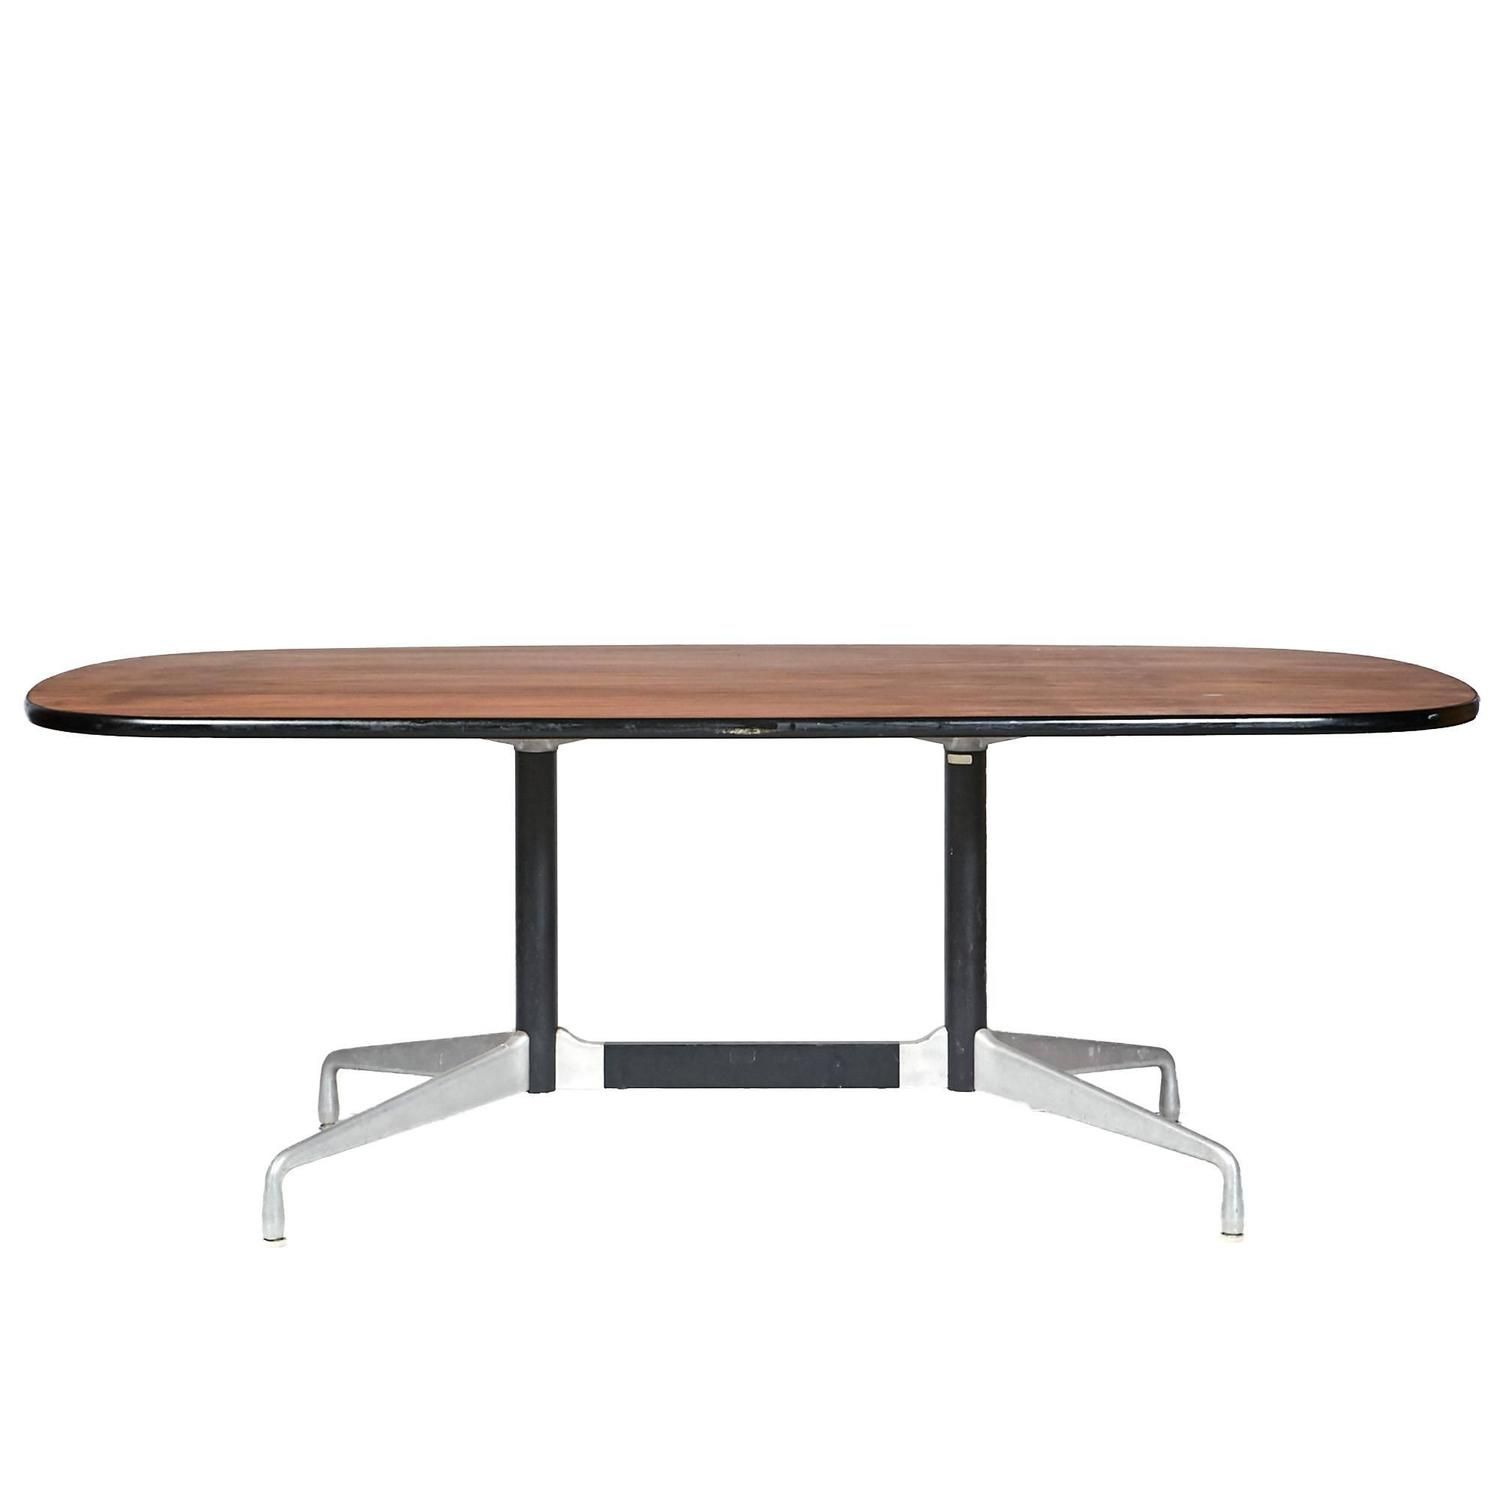 Herman Miller Walnut Top Table By Ray & Charles Eames,